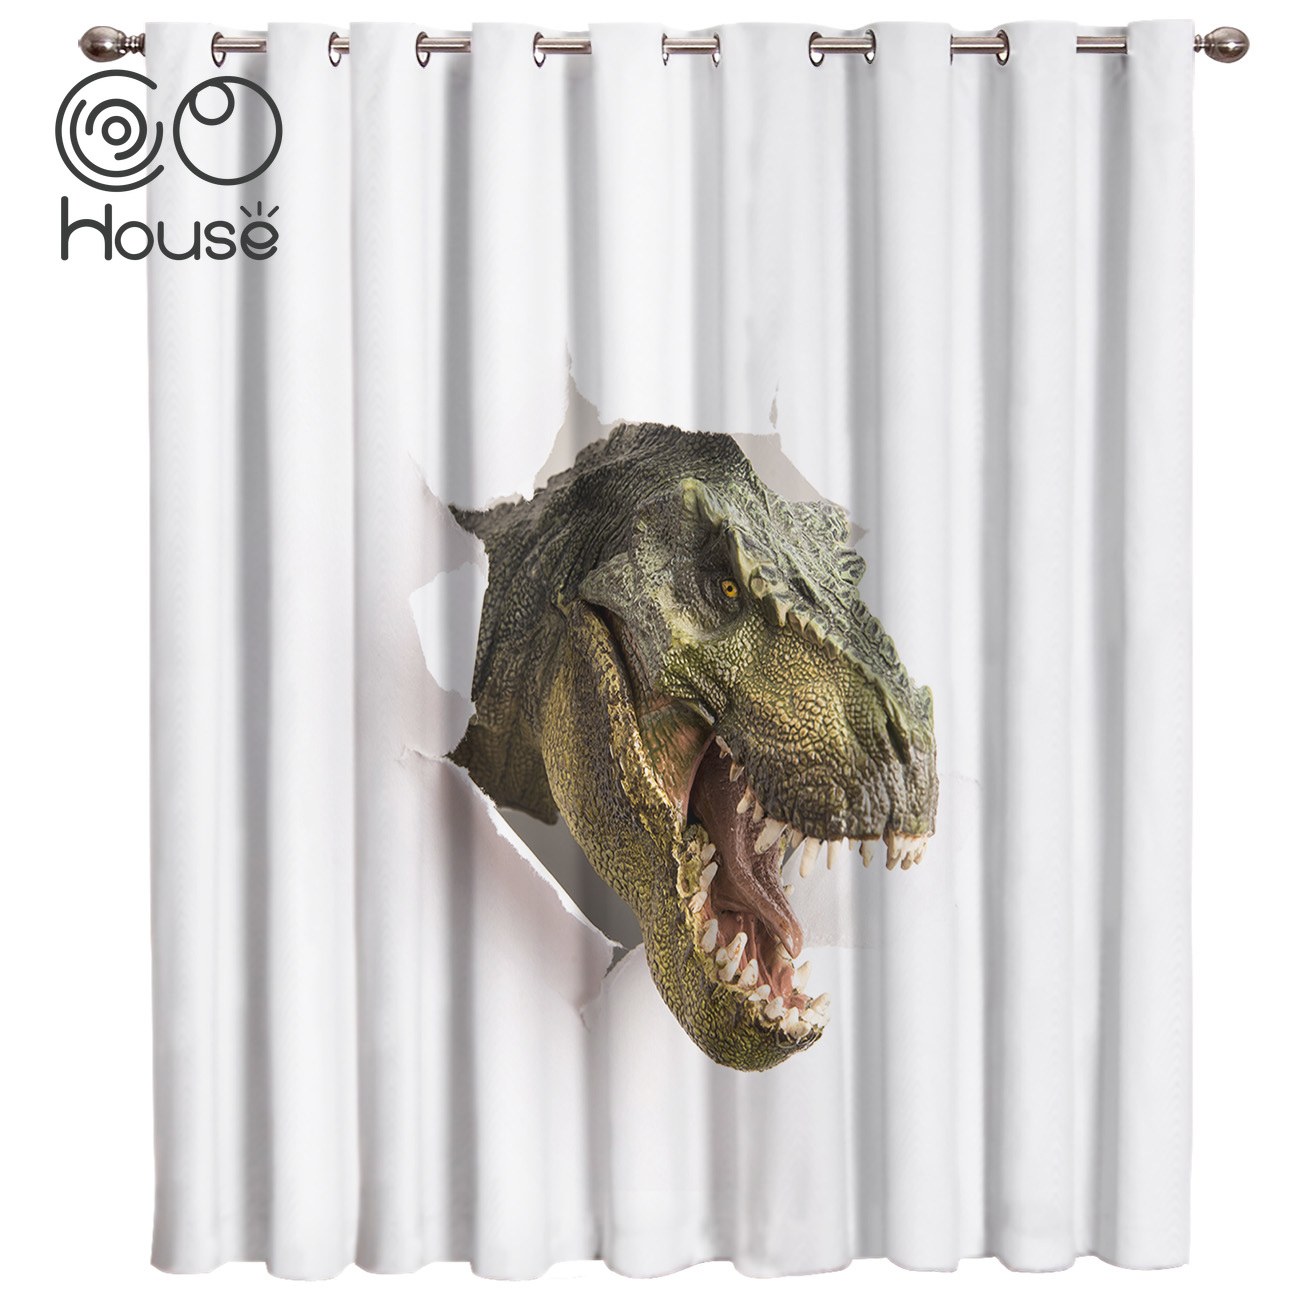 Funny Finosaur Room Curtains Large Window Living Room Kitchen Bedroom Fabric Decor Kids Outdoor Curtains Party